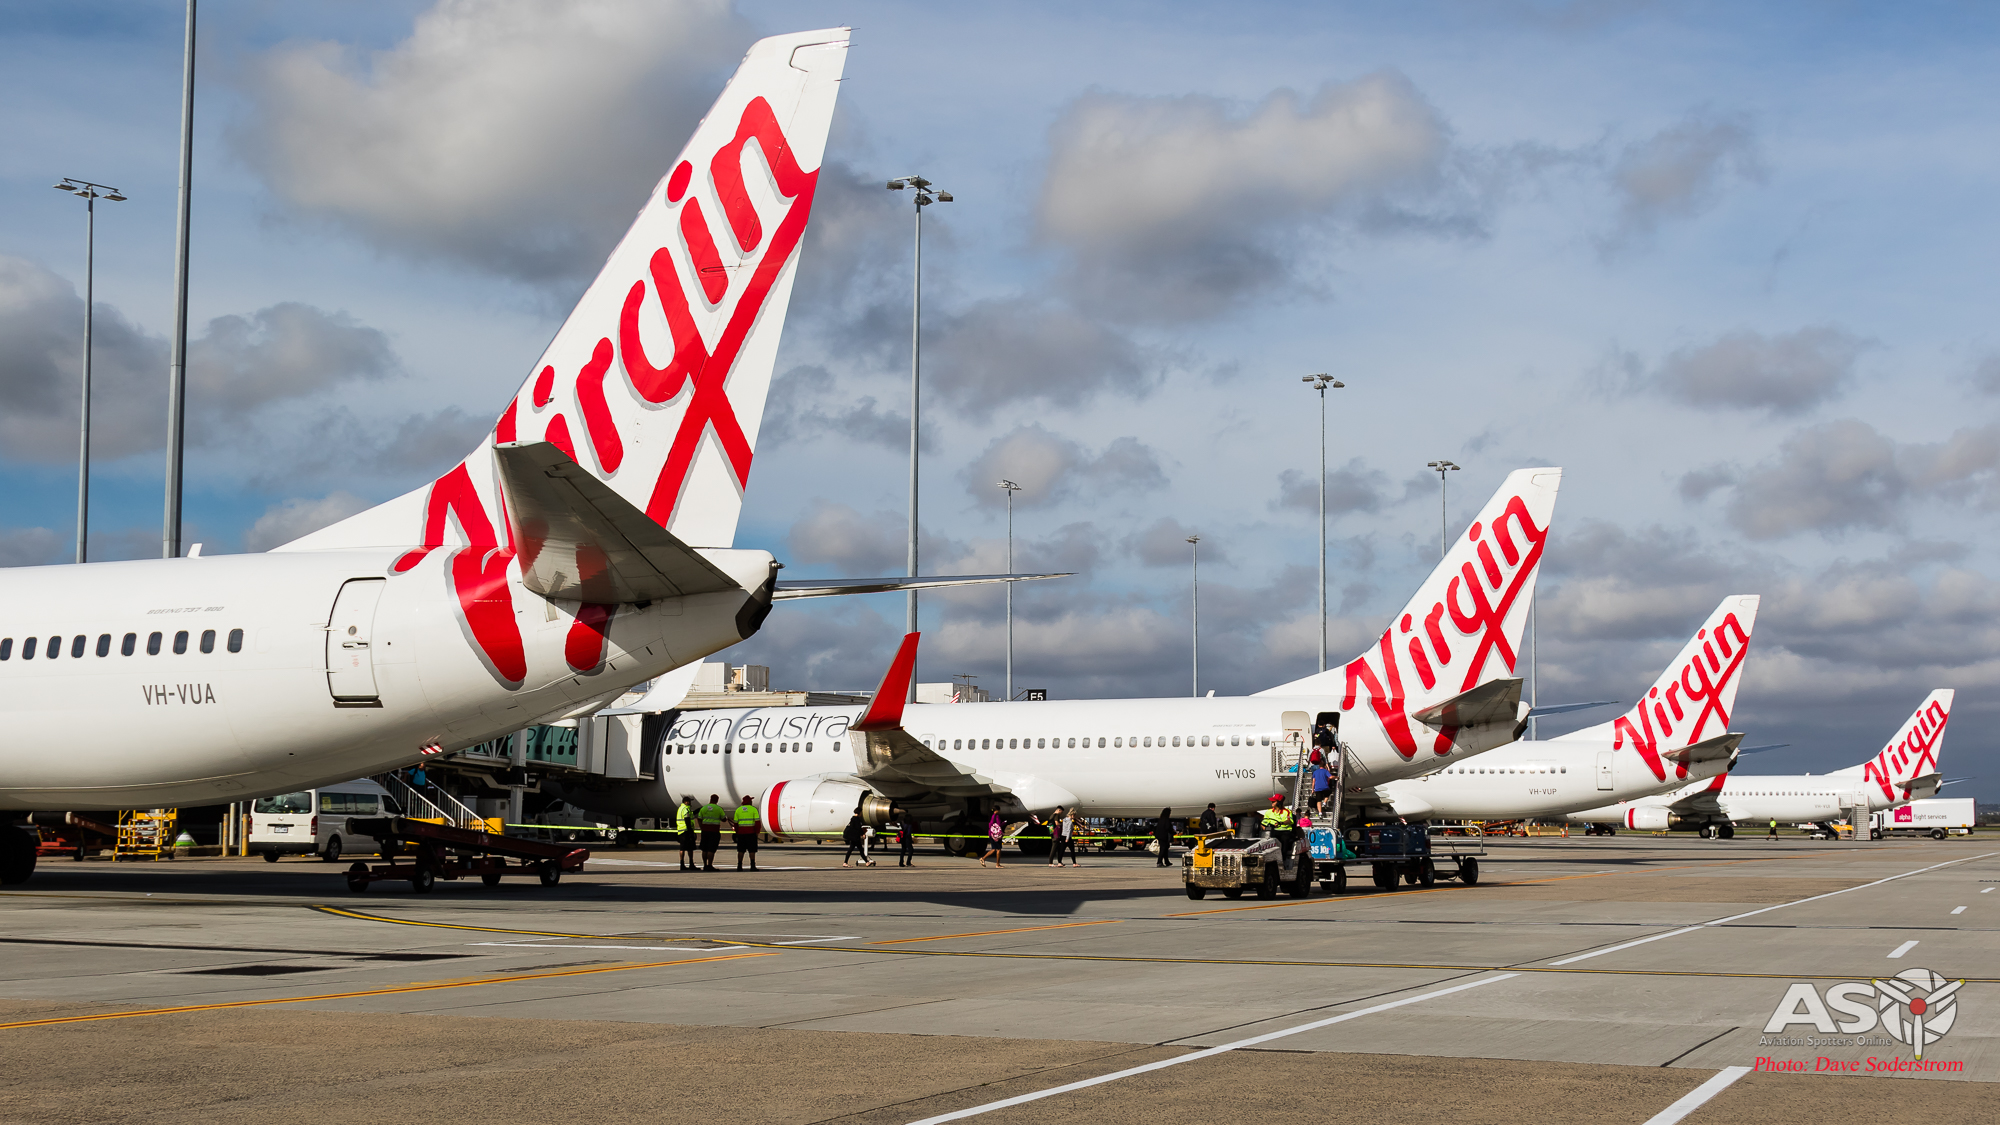 Virgin Australia, the evolving airline.